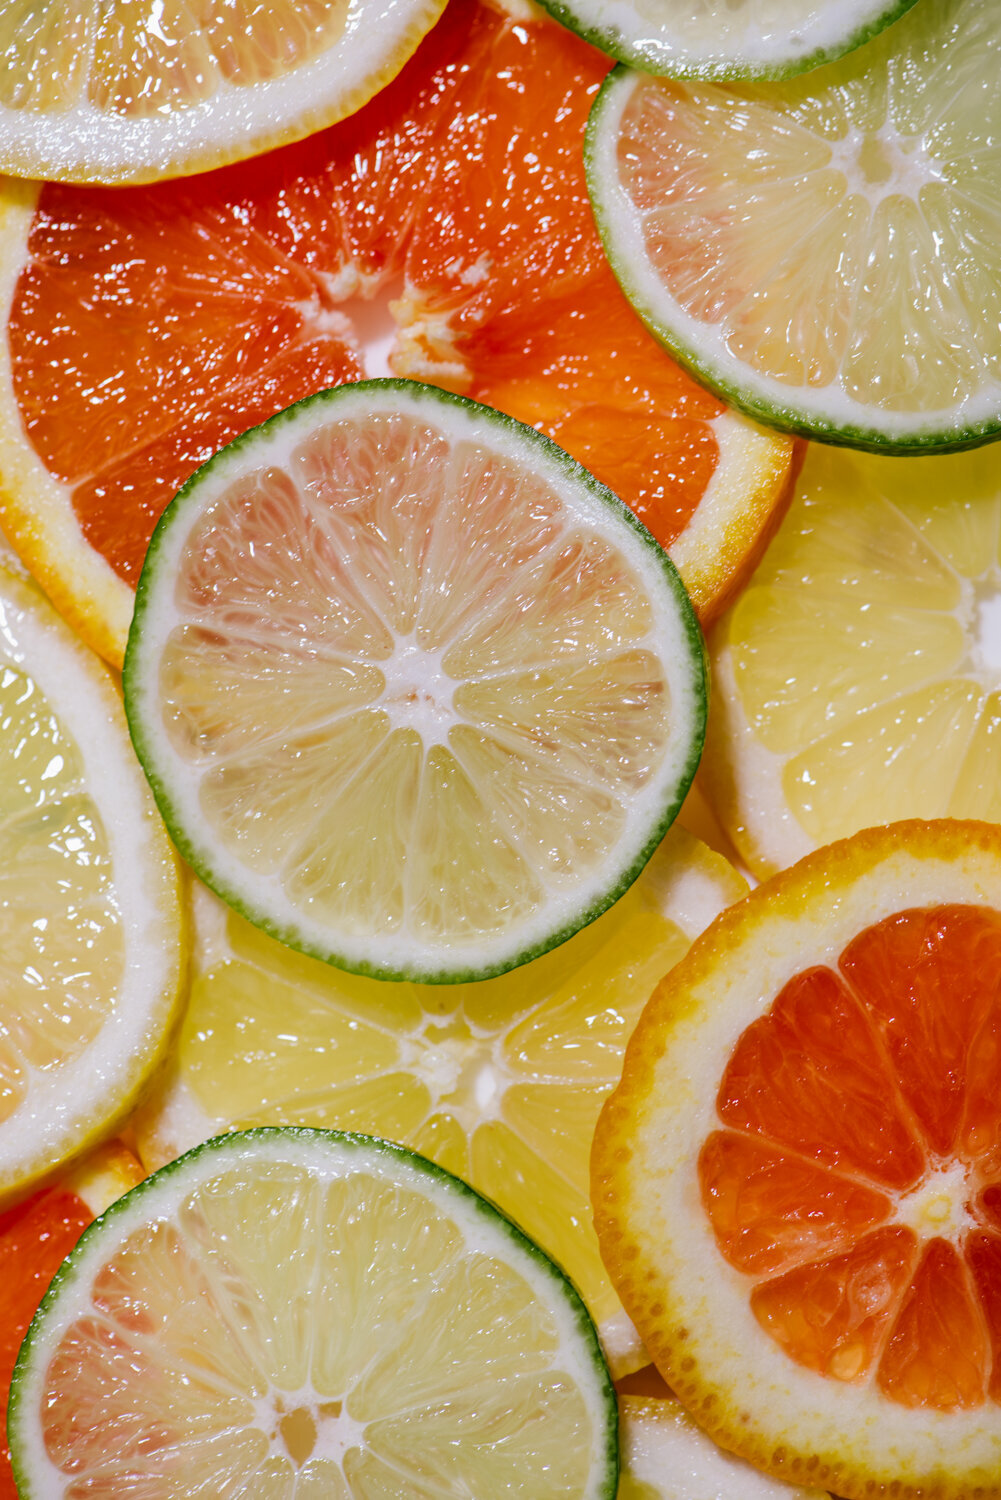 cara cara oranges with lemons and limes